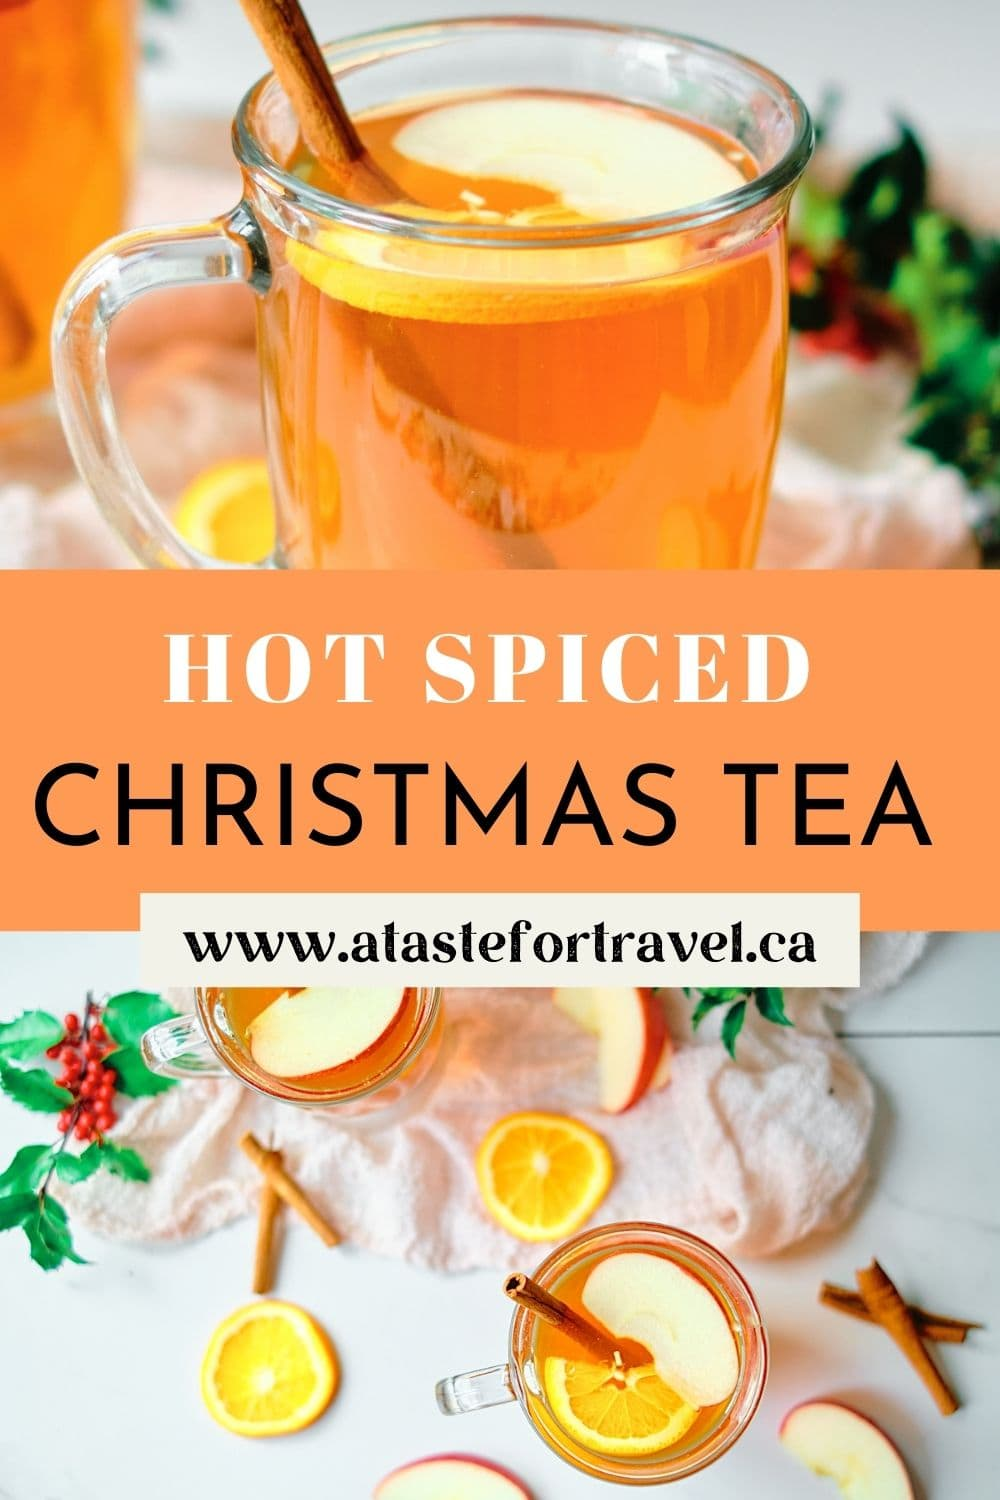 Collage of festive tea with Pinterest text overlay.